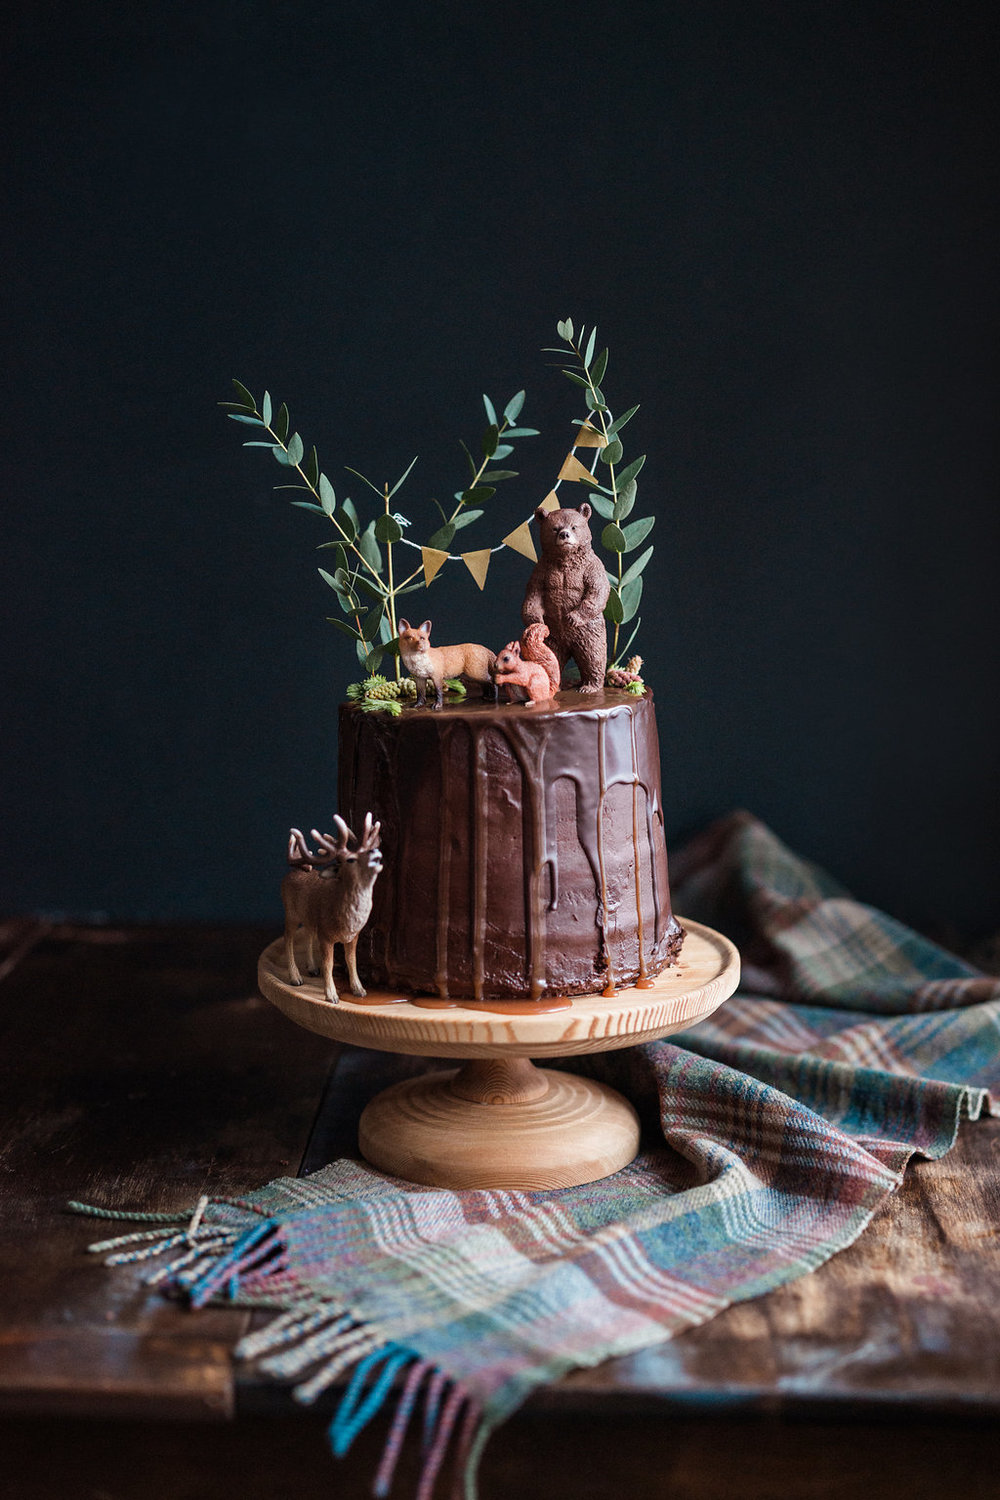 Chocolate frosted salted caramel cake with chocolate & caramel drizzle